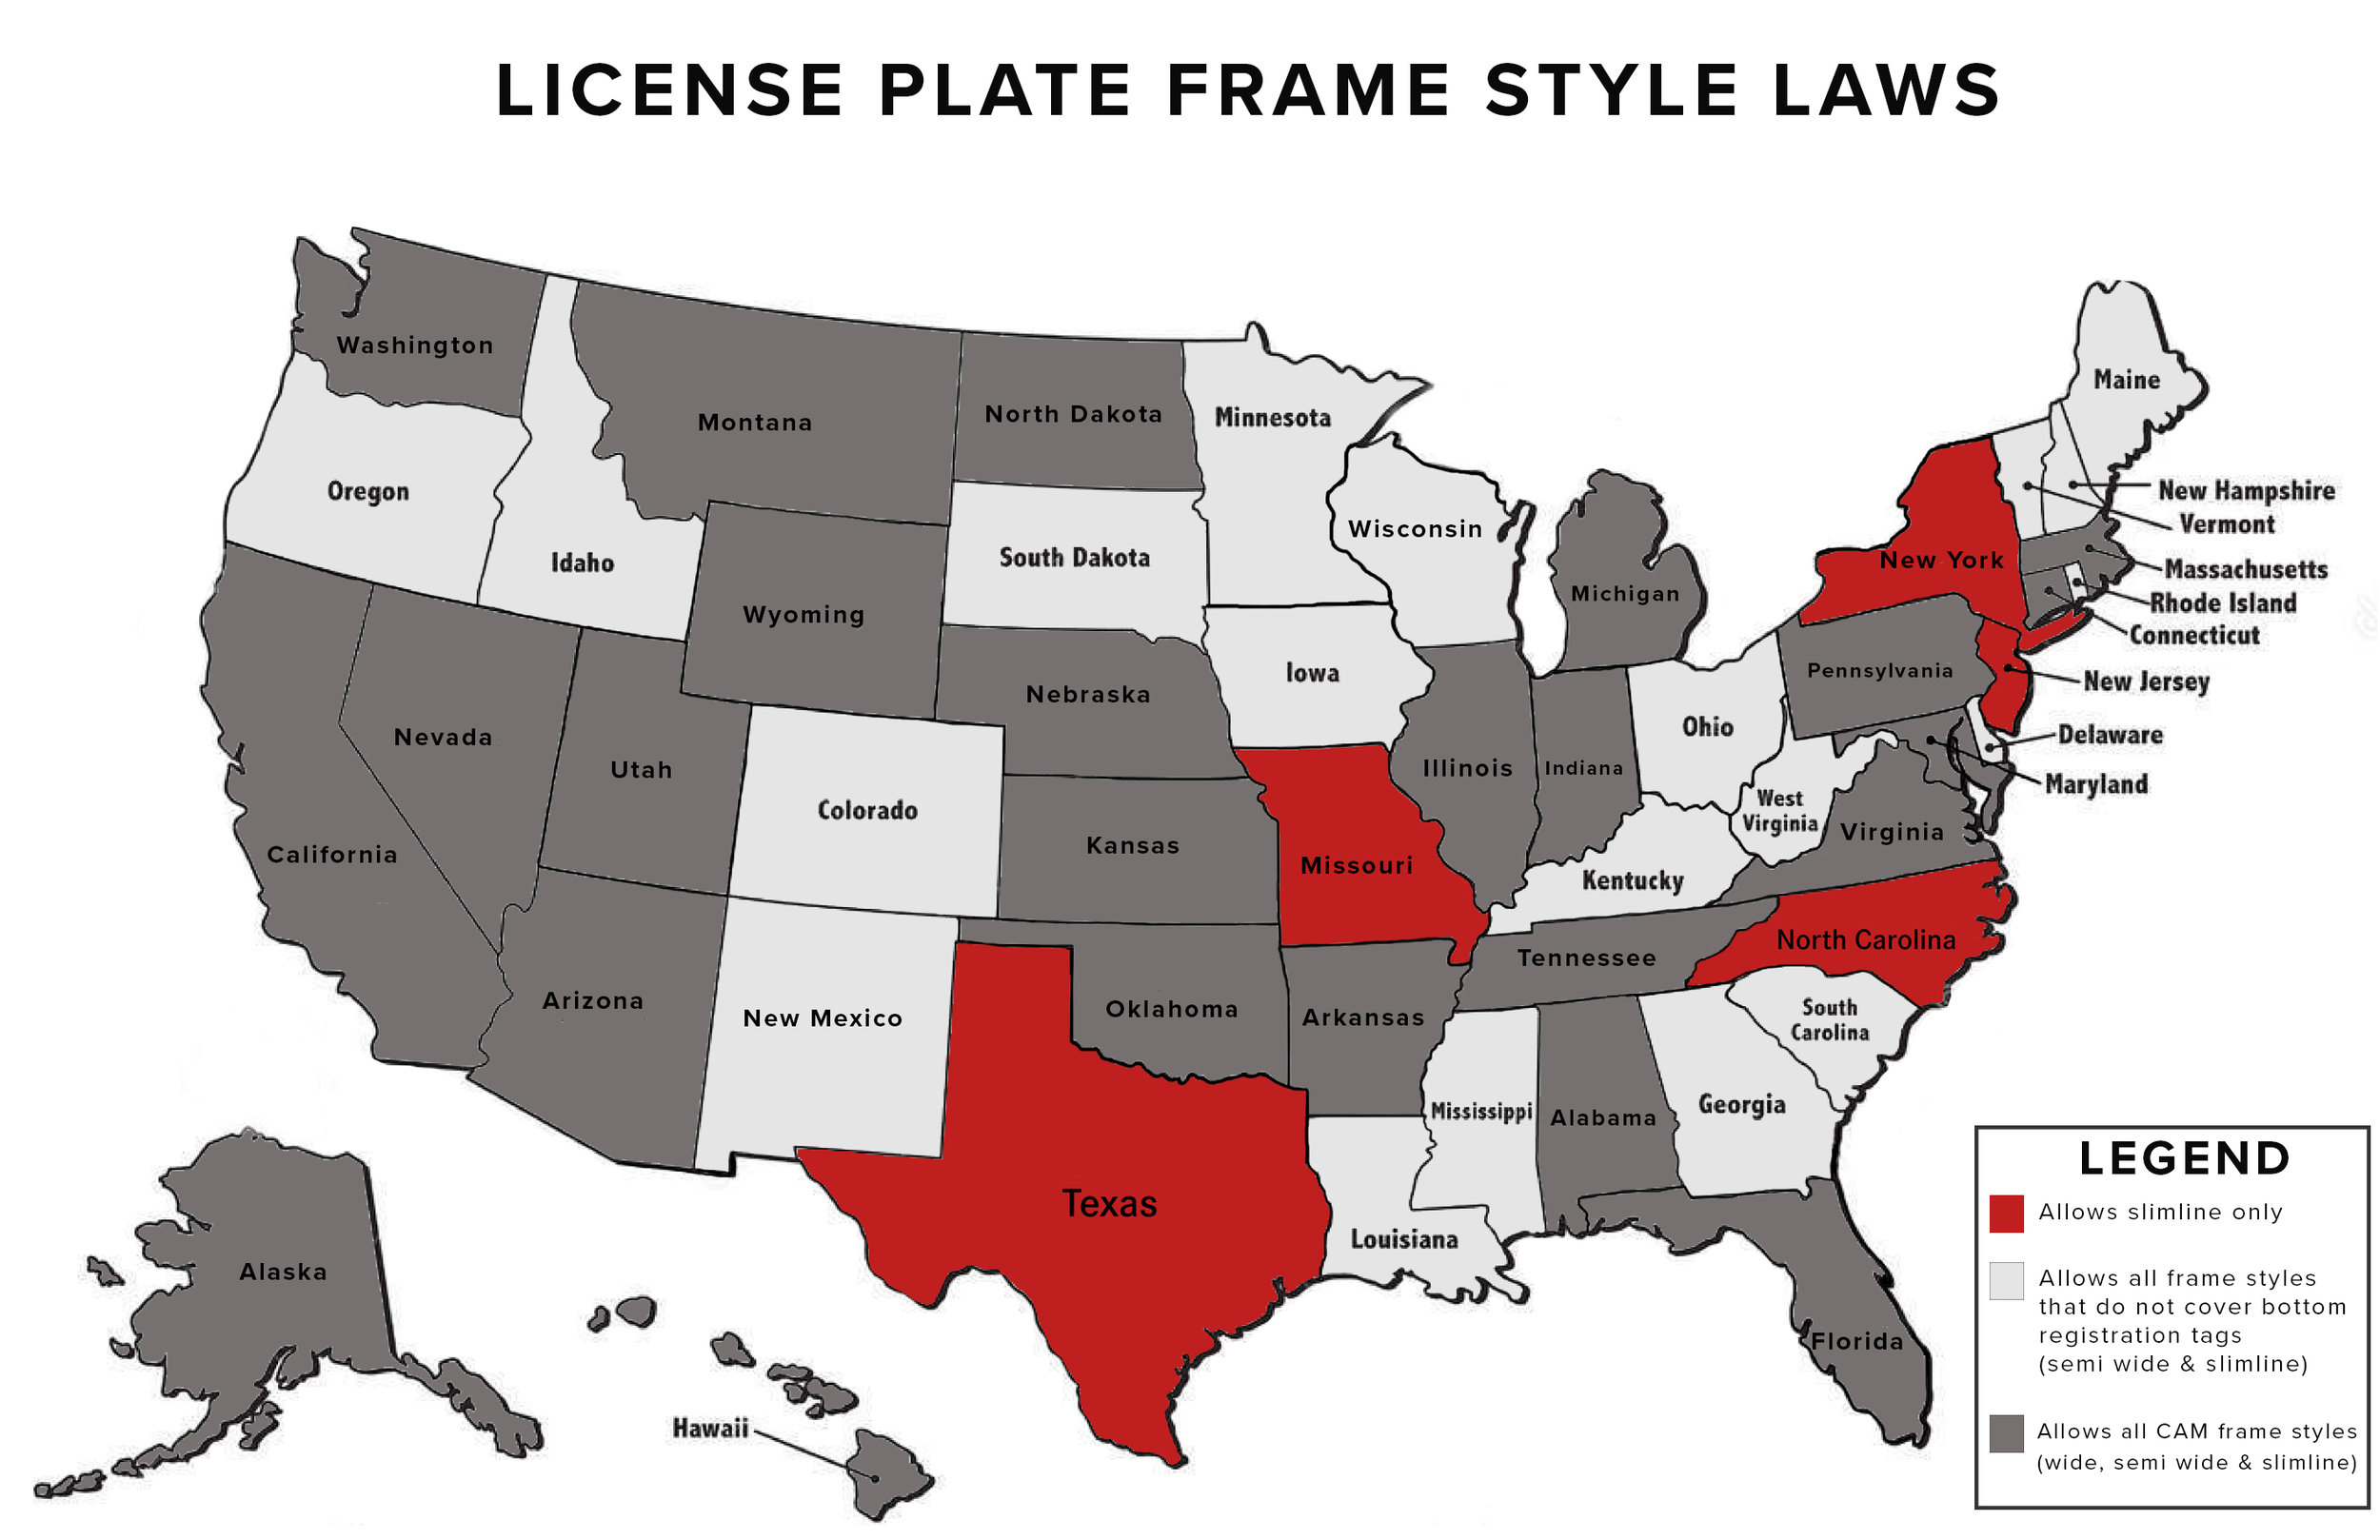 LICENSE PLATE FRAME COMPLIANCE LAWS MAP